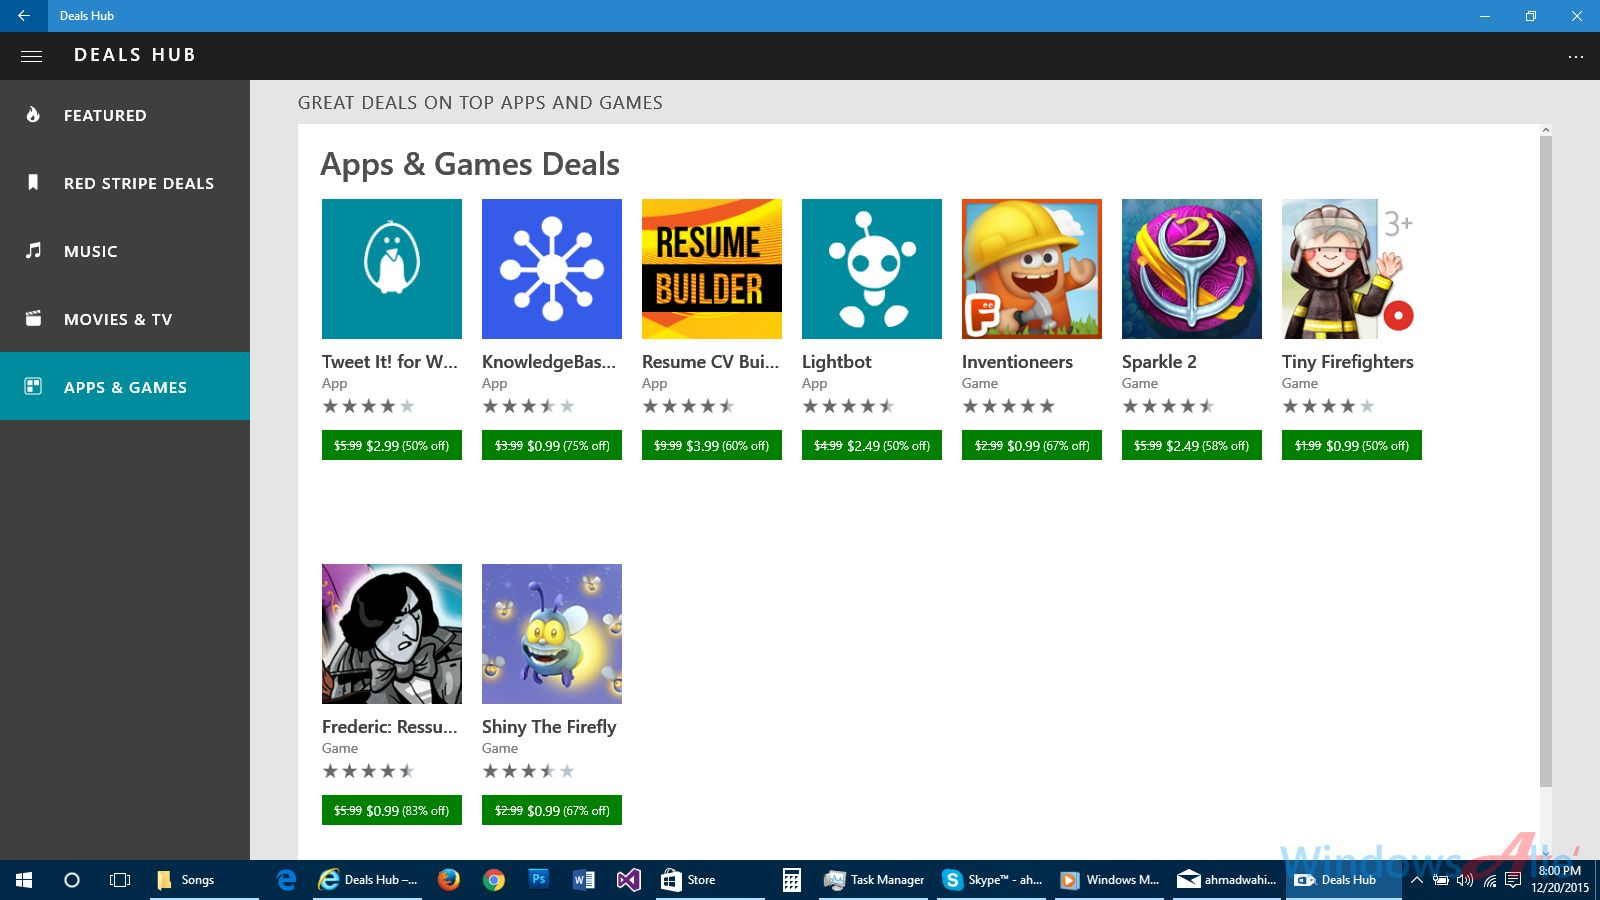 Deals Hub App By Microsoft For Windows 10 Will Keep You Updated With Hot Deals On Apps Music And More In Store App Windows 10 Windows